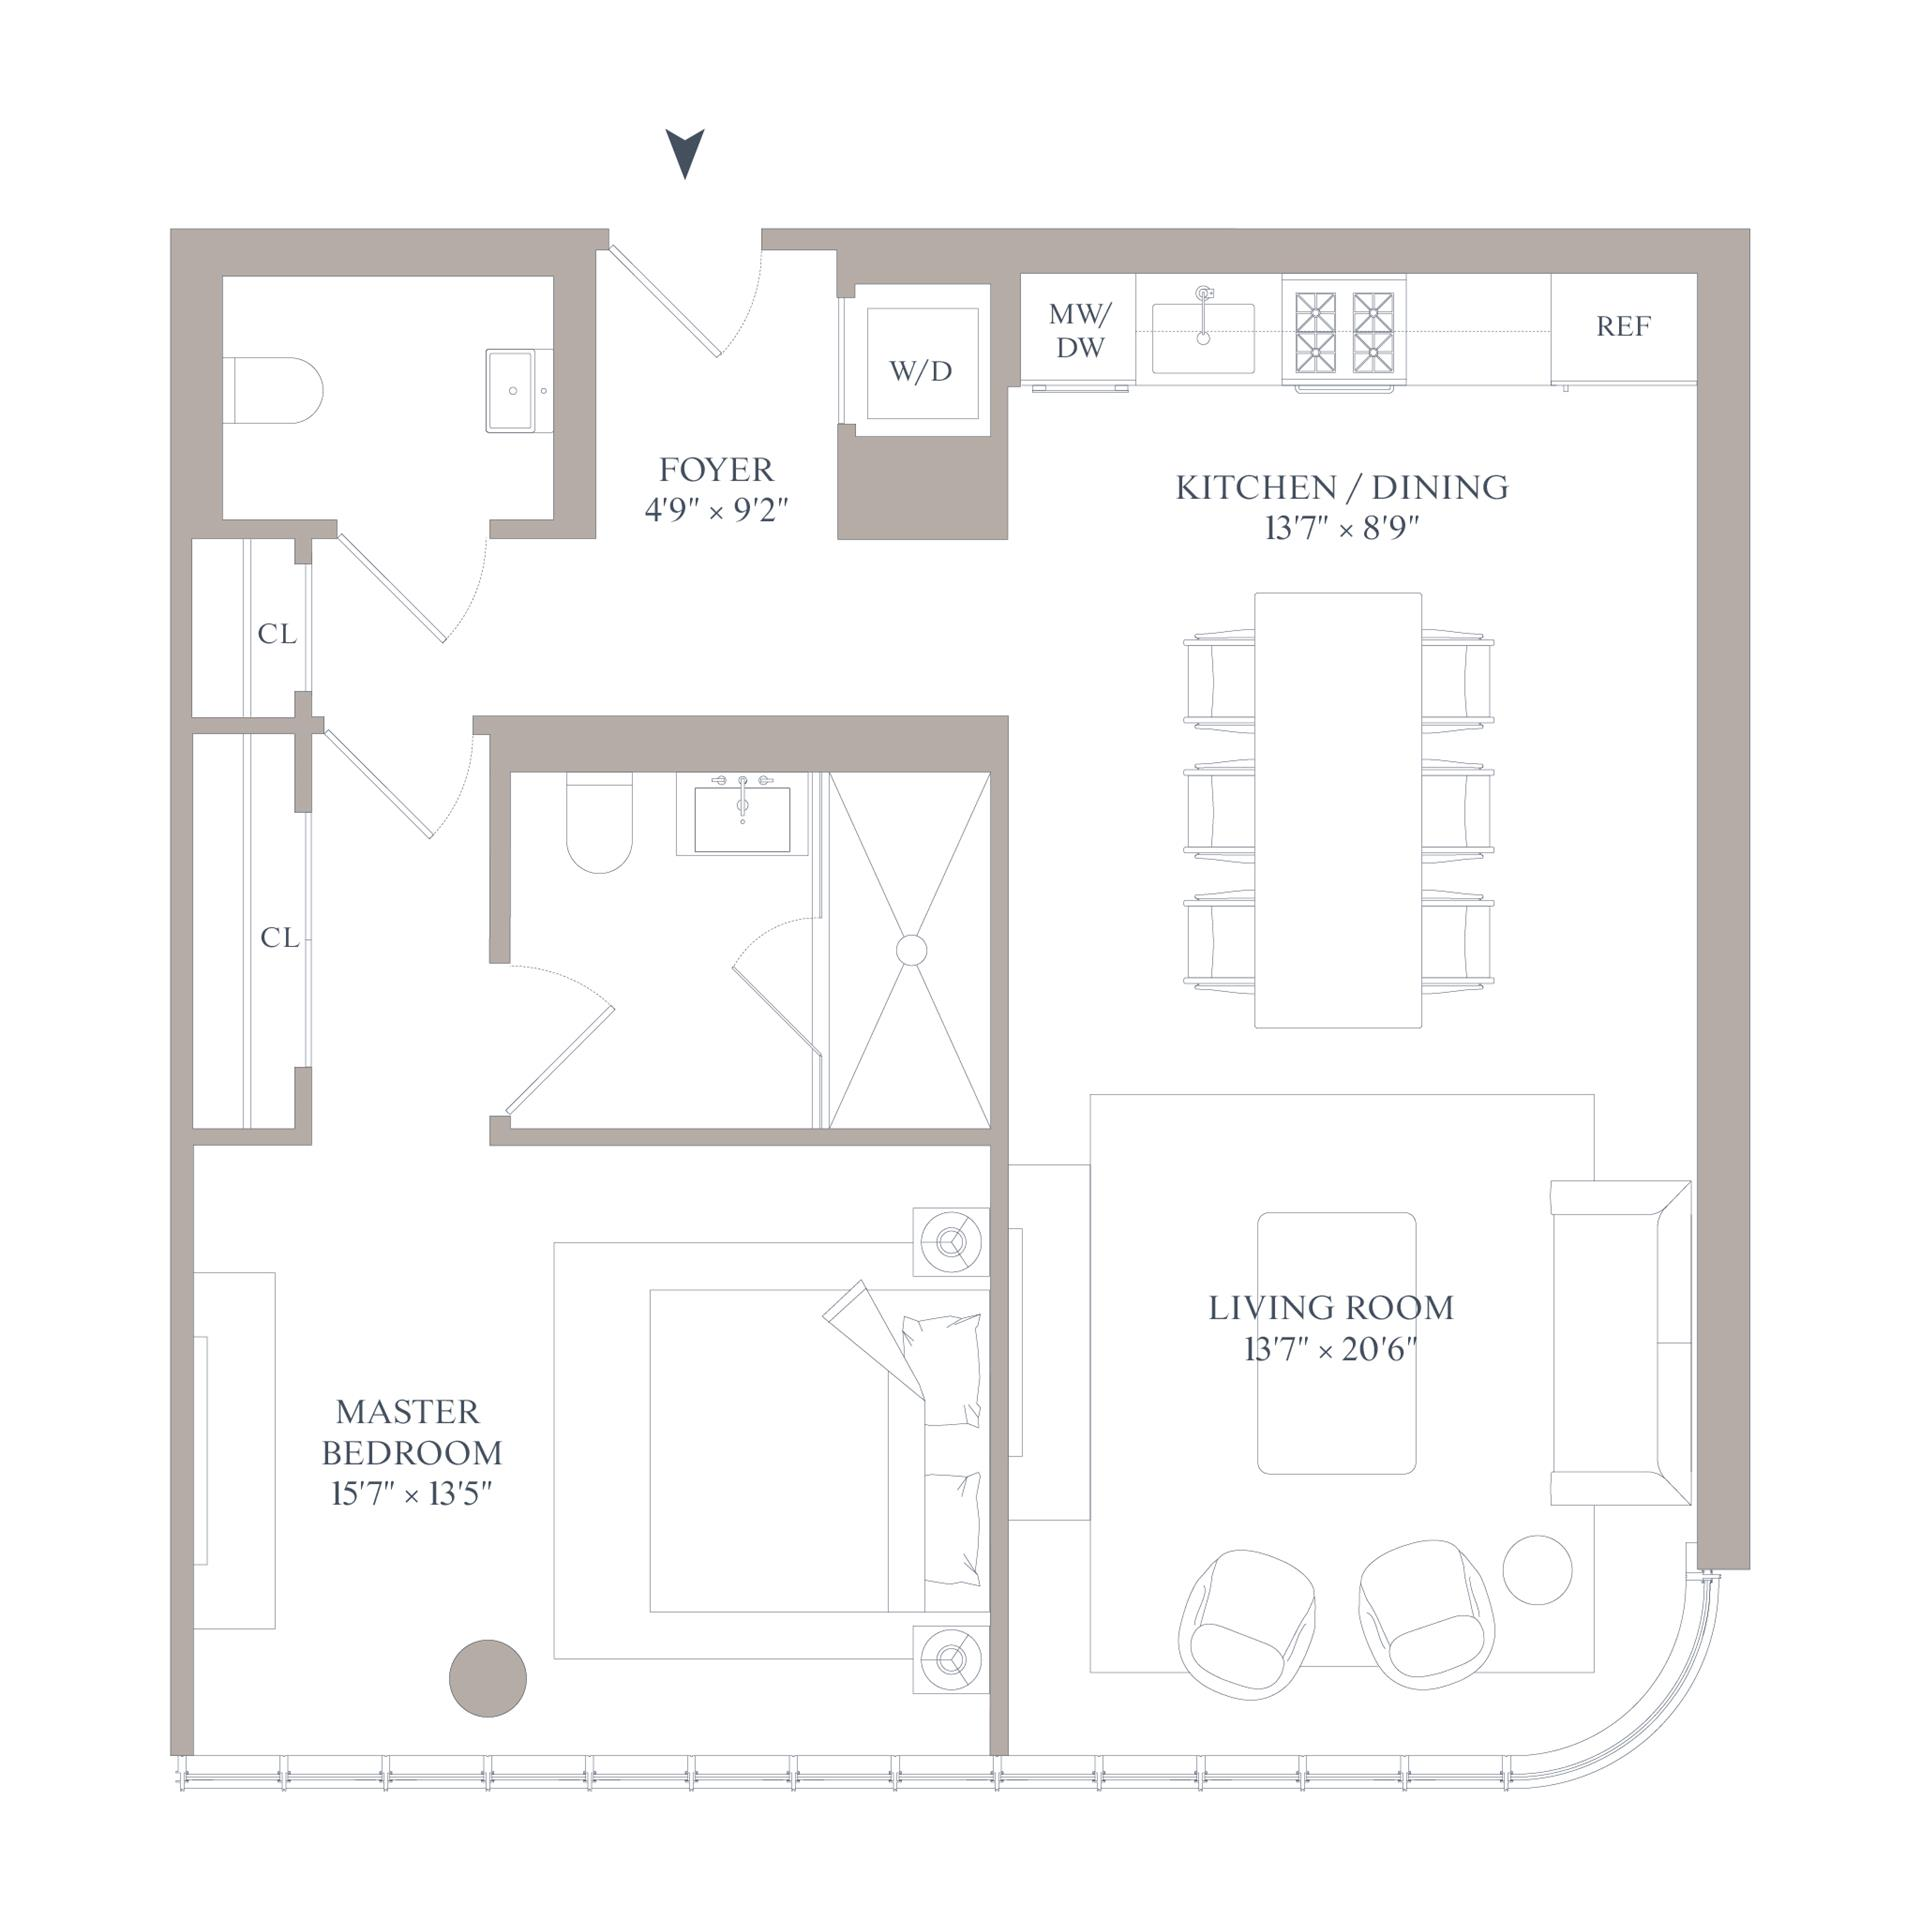 Floor plan of 565 Broome St, S11D - SoHo - Nolita, New York